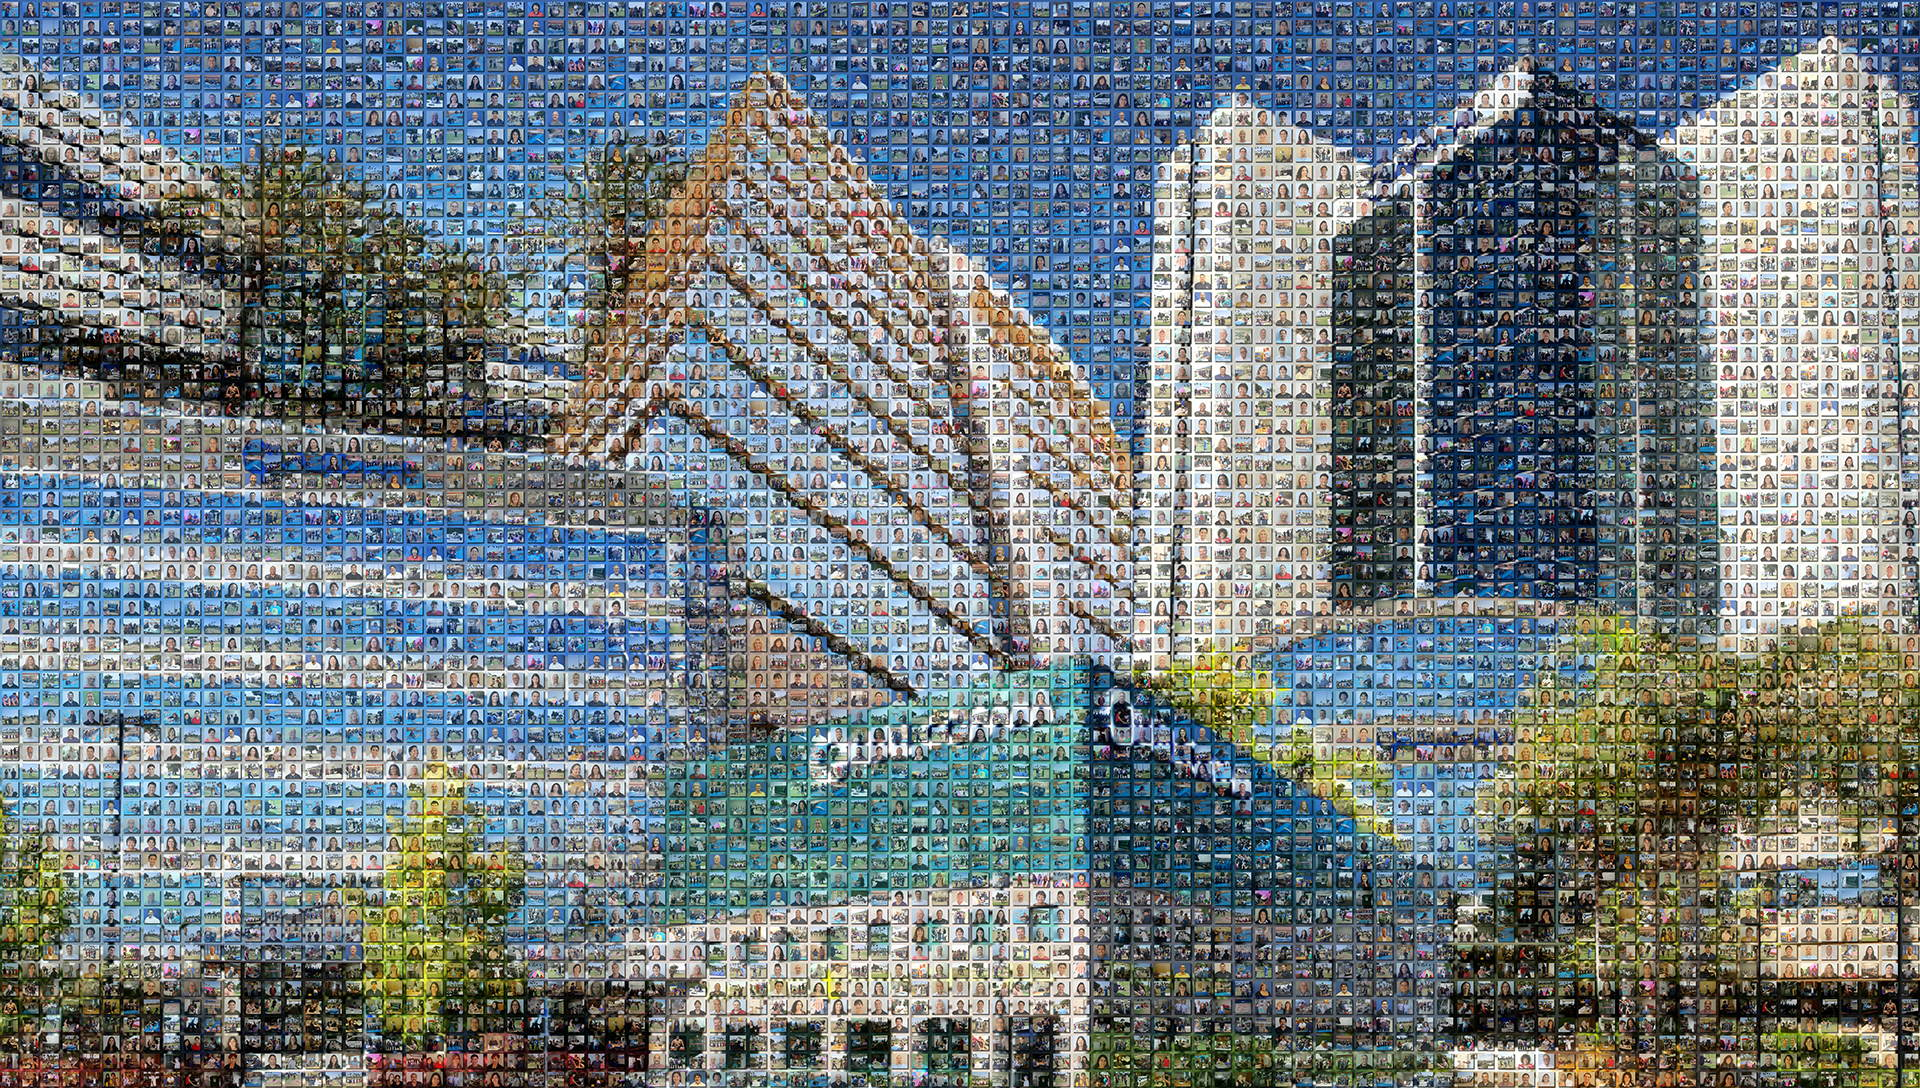 photo mosaic created using 761 employee photos